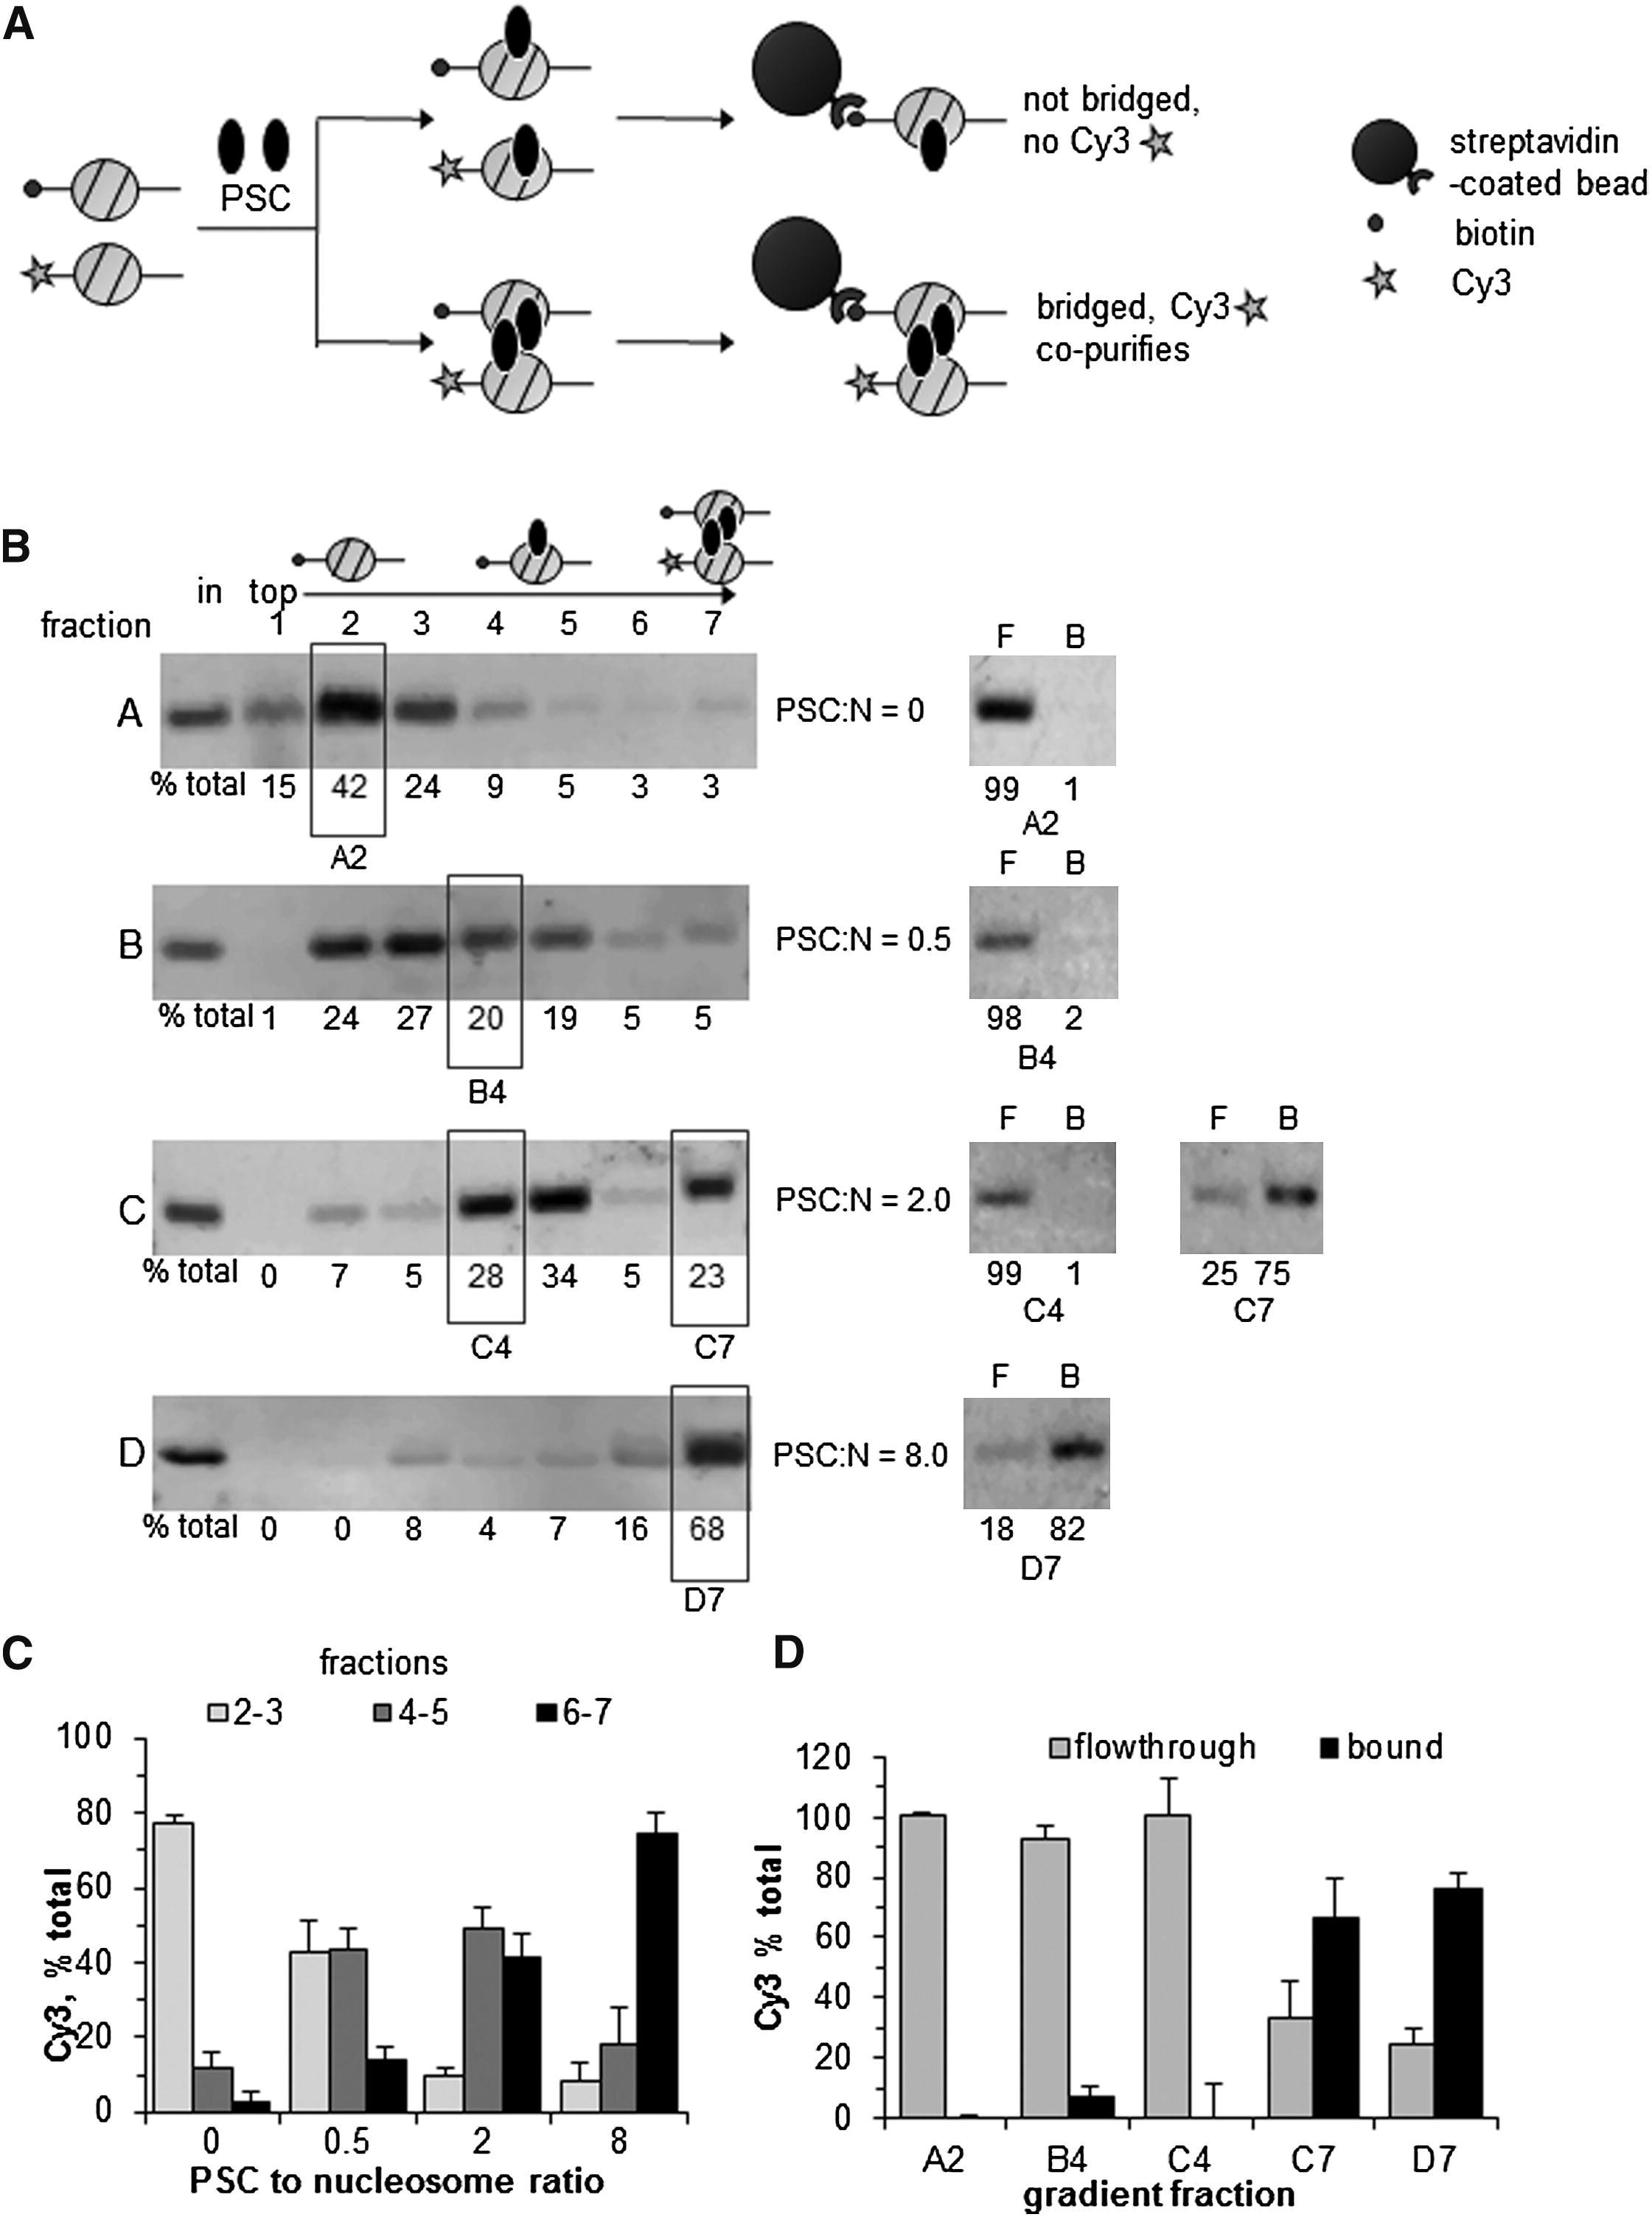 A Bridging Model For Persistence Of A Polycomb Group Protein Complex Through Dna Replication In